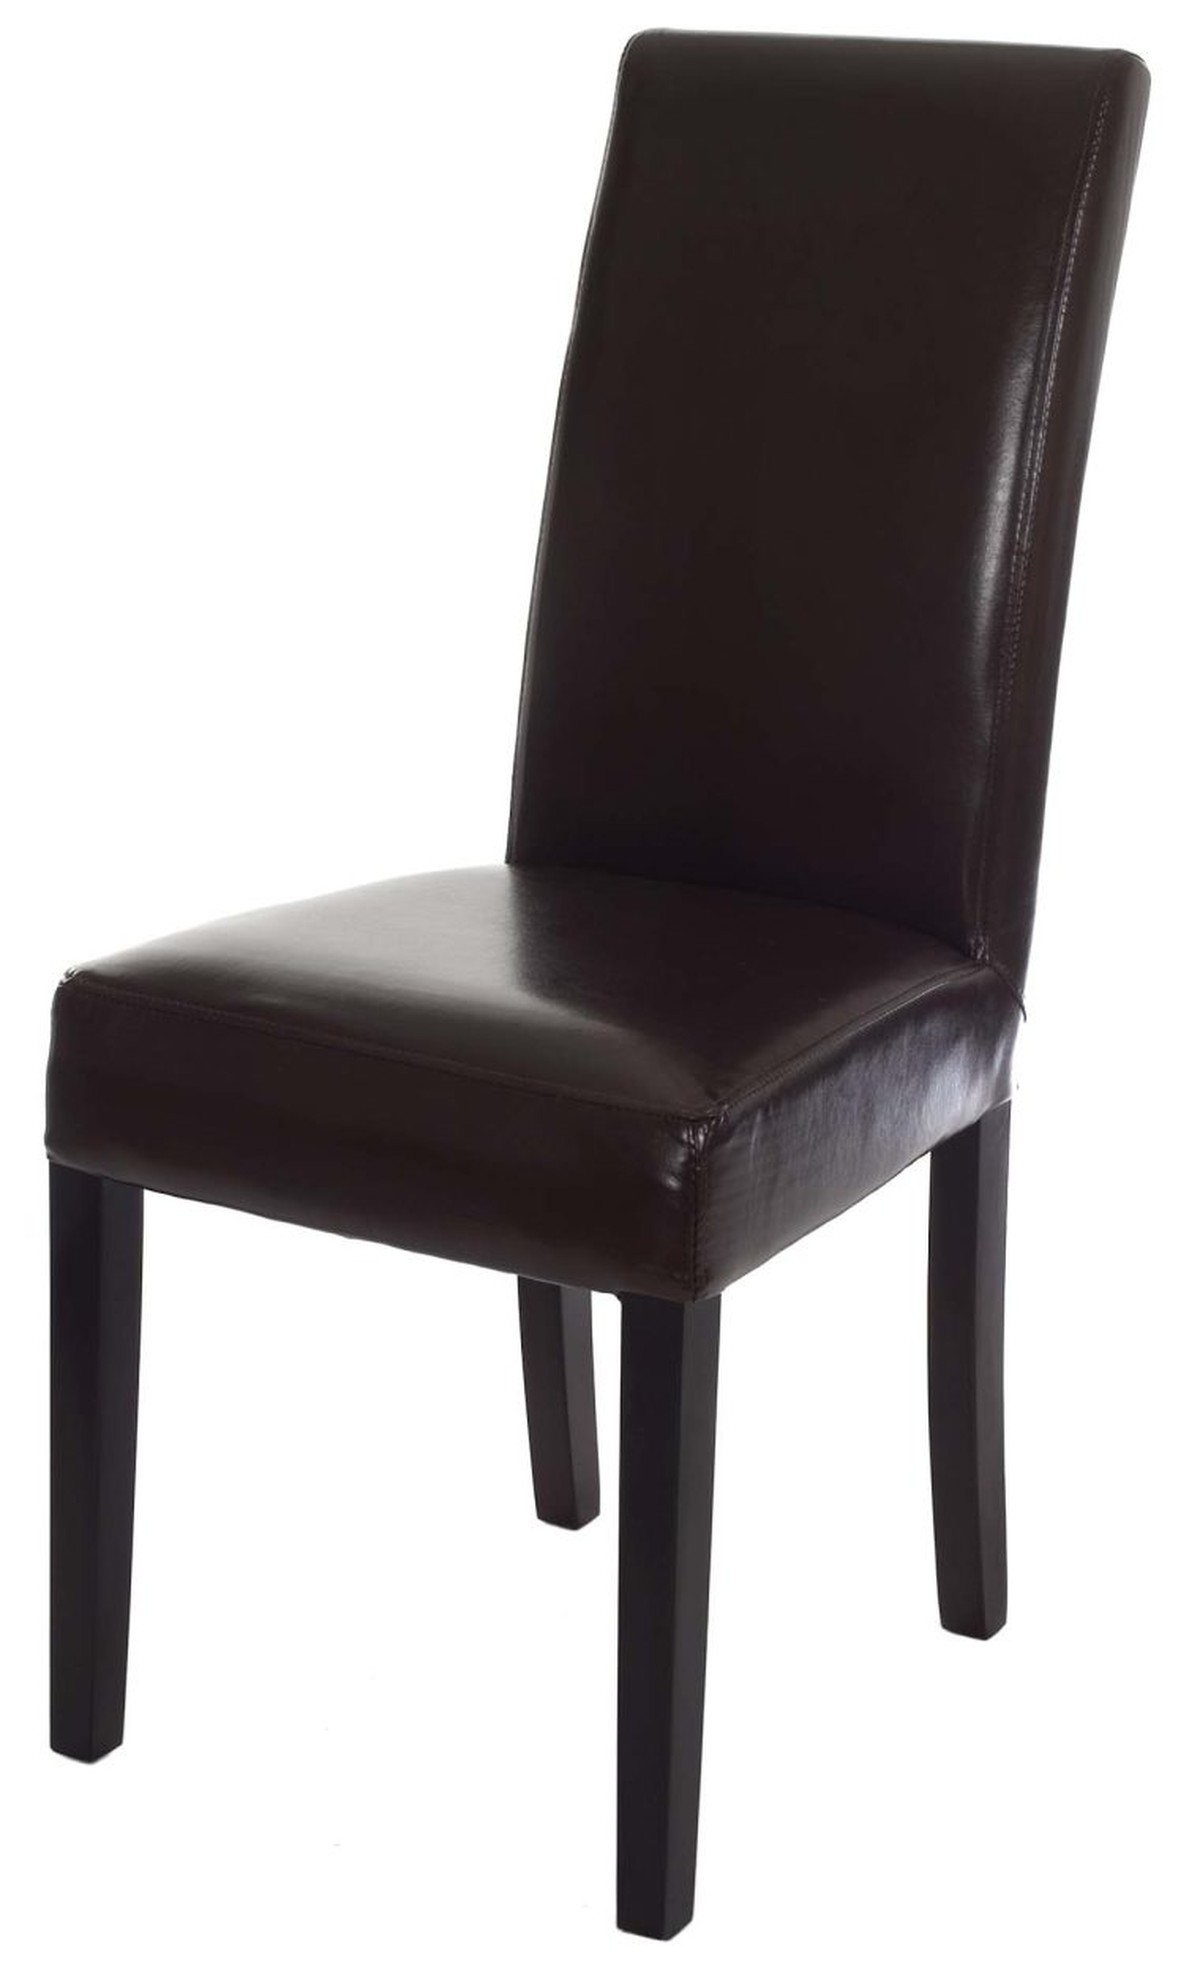 Secondhand exhibition and display equipment fiesta for Black leather dining chairs